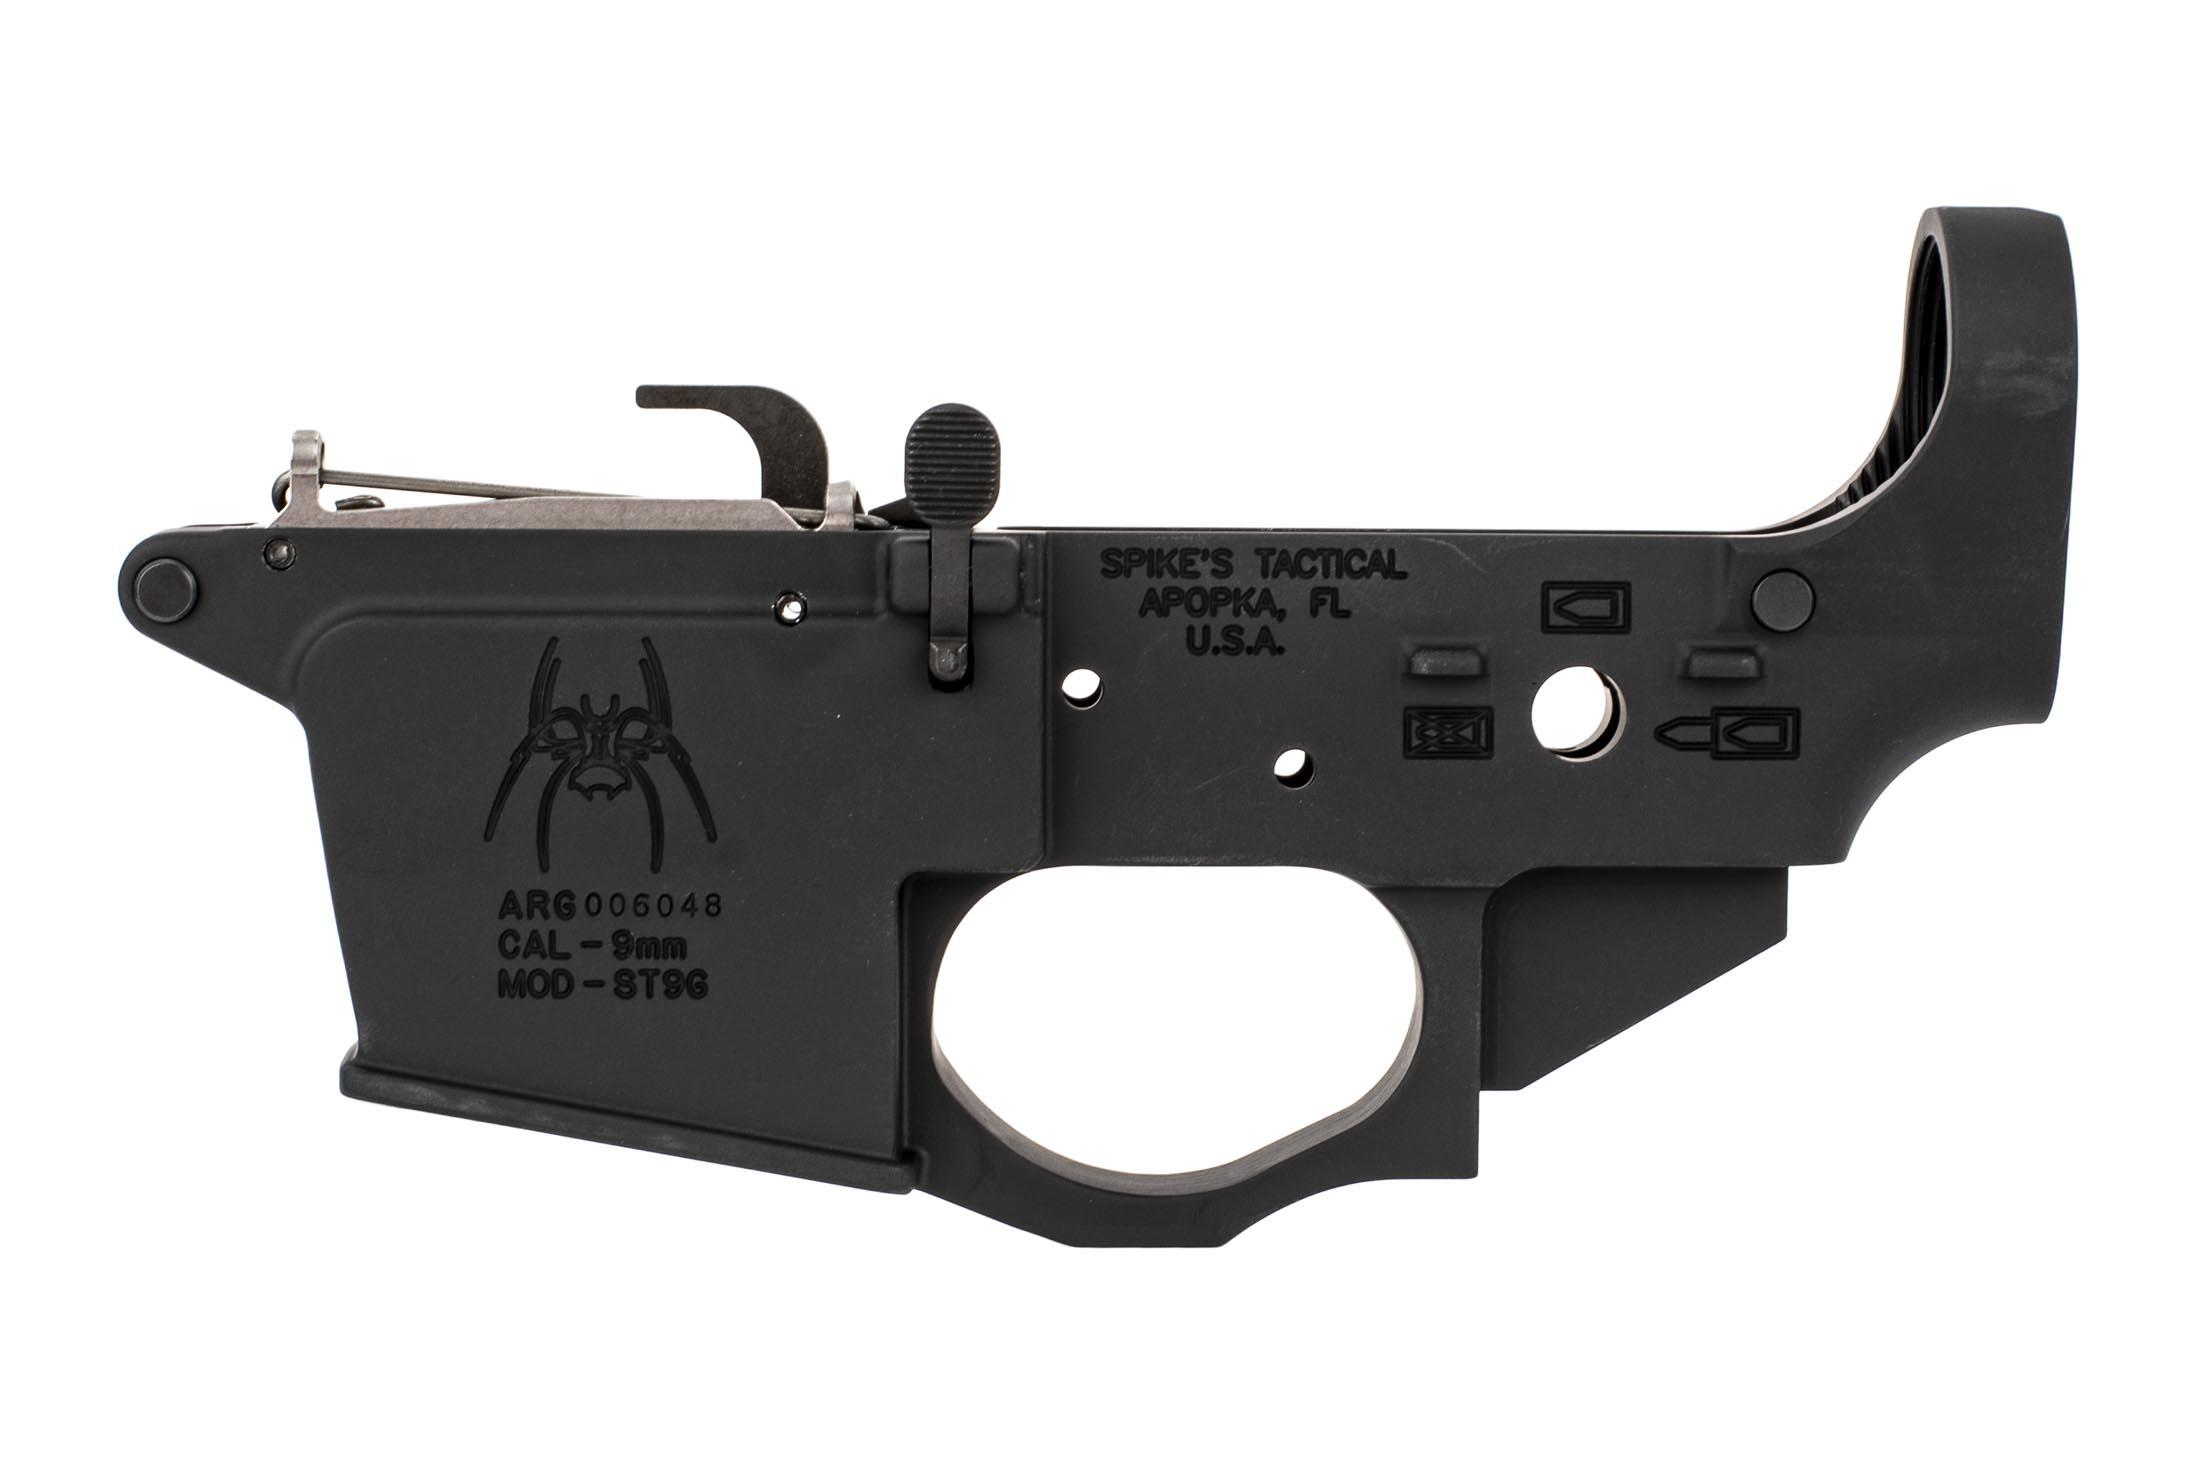 The Spike's Tactical Spider 9mm Lower receiver with bolt release and ejector